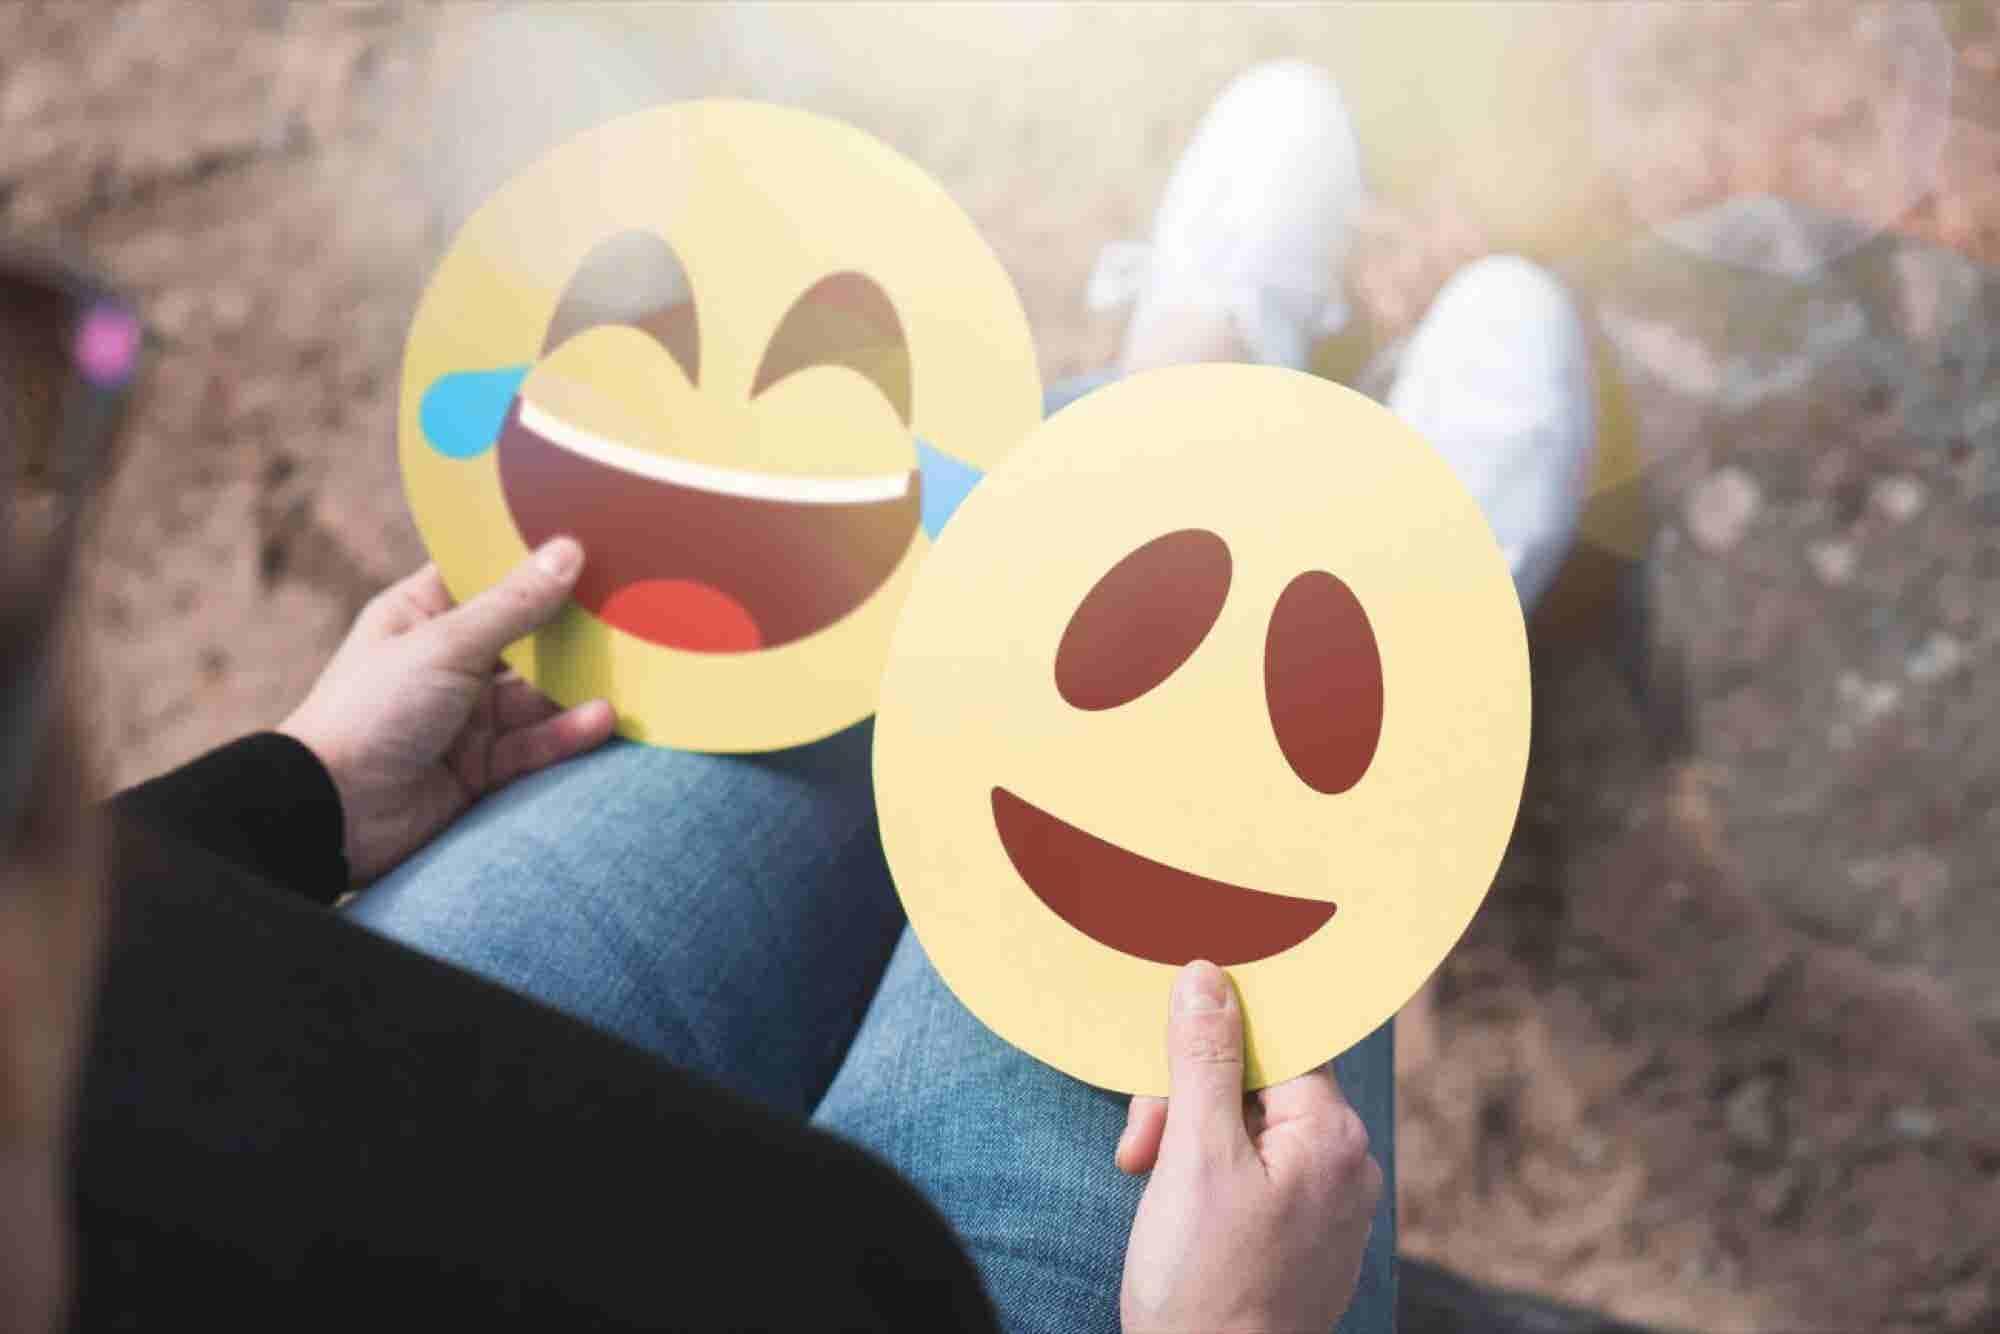 As a Boss, There's Much More to Digital Communications With Your Team Than Using the Right Emoji